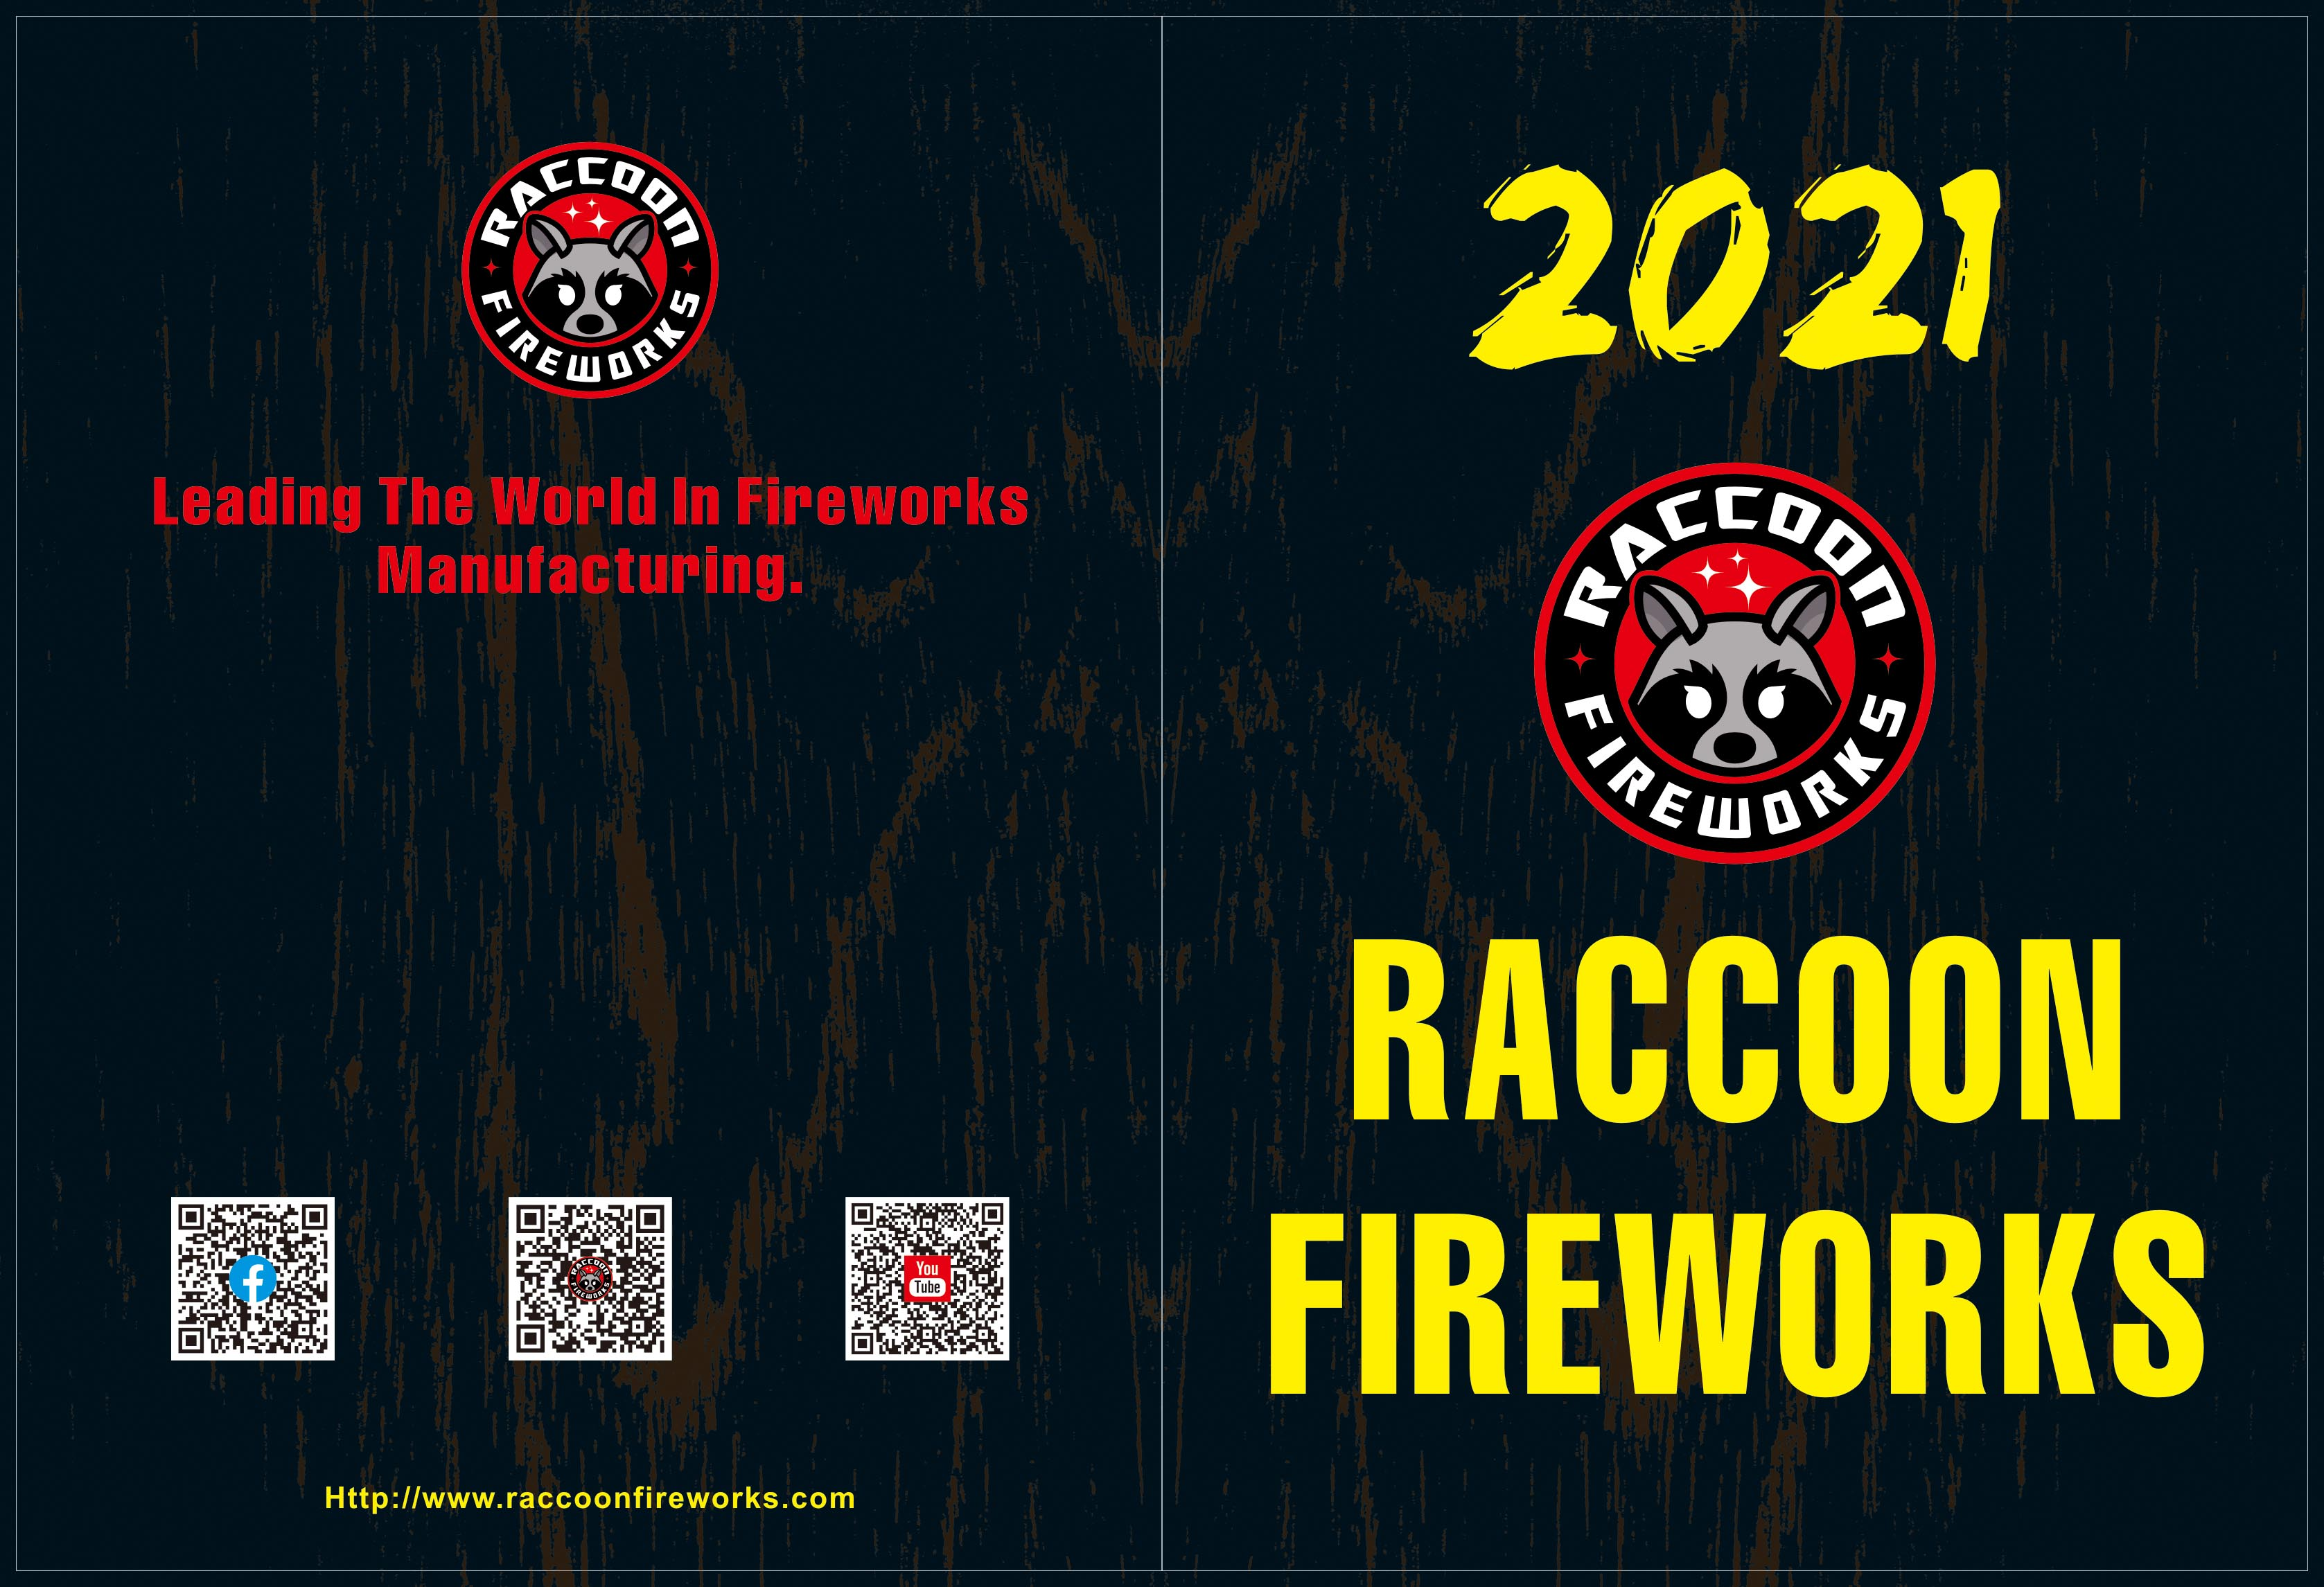 #Raccoon FIreworks New Catalog of New Items for 2021#